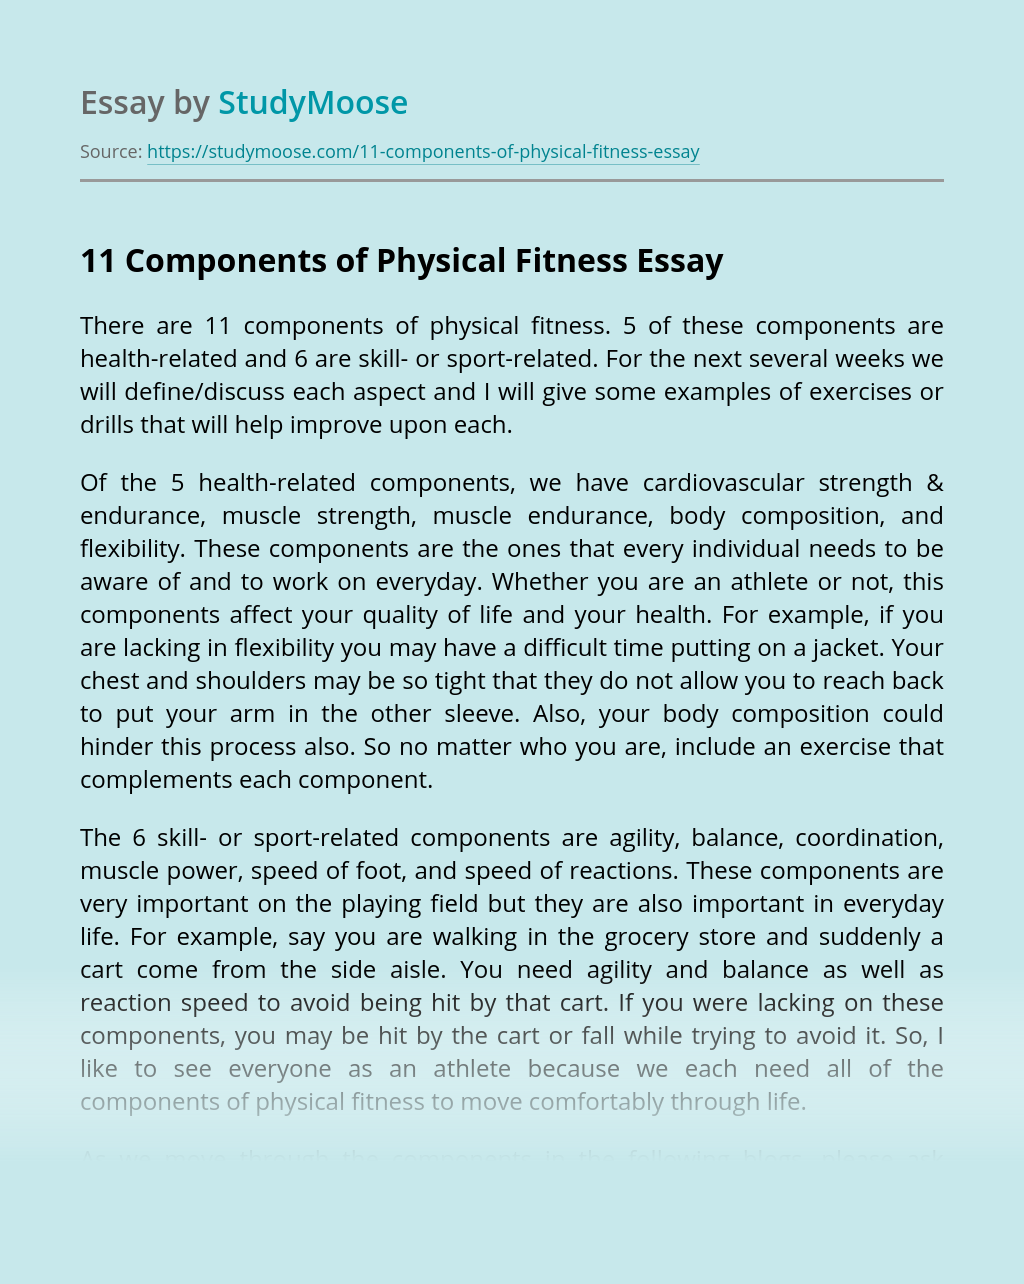 11 Components of Physical Fitness